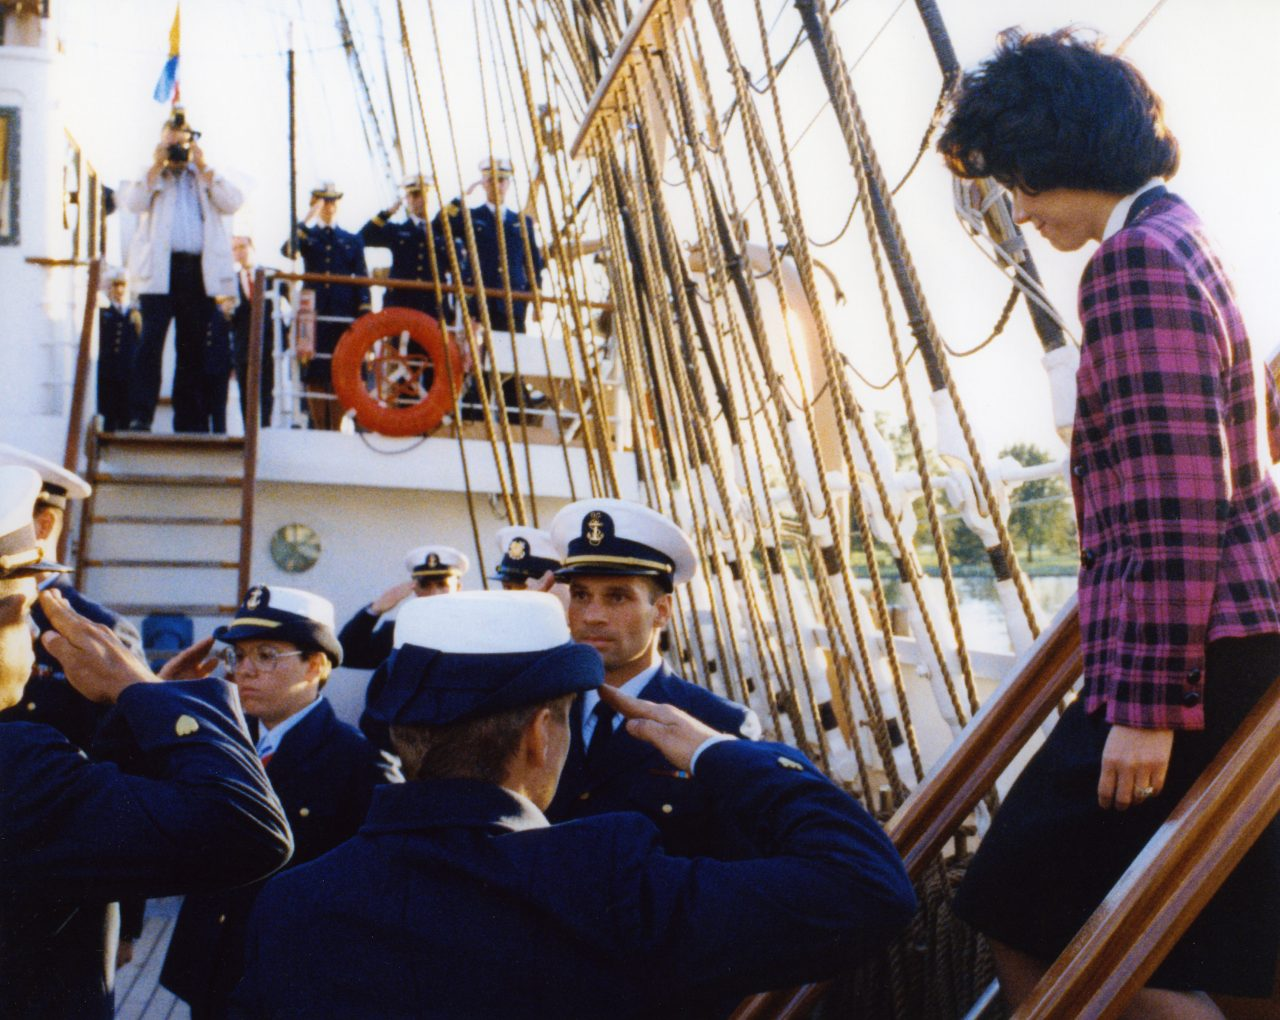 U.S. Deputy Secretary of Transportation Elaine Chao visiting the U.S. Coast Guard training vessel, The Eagle.